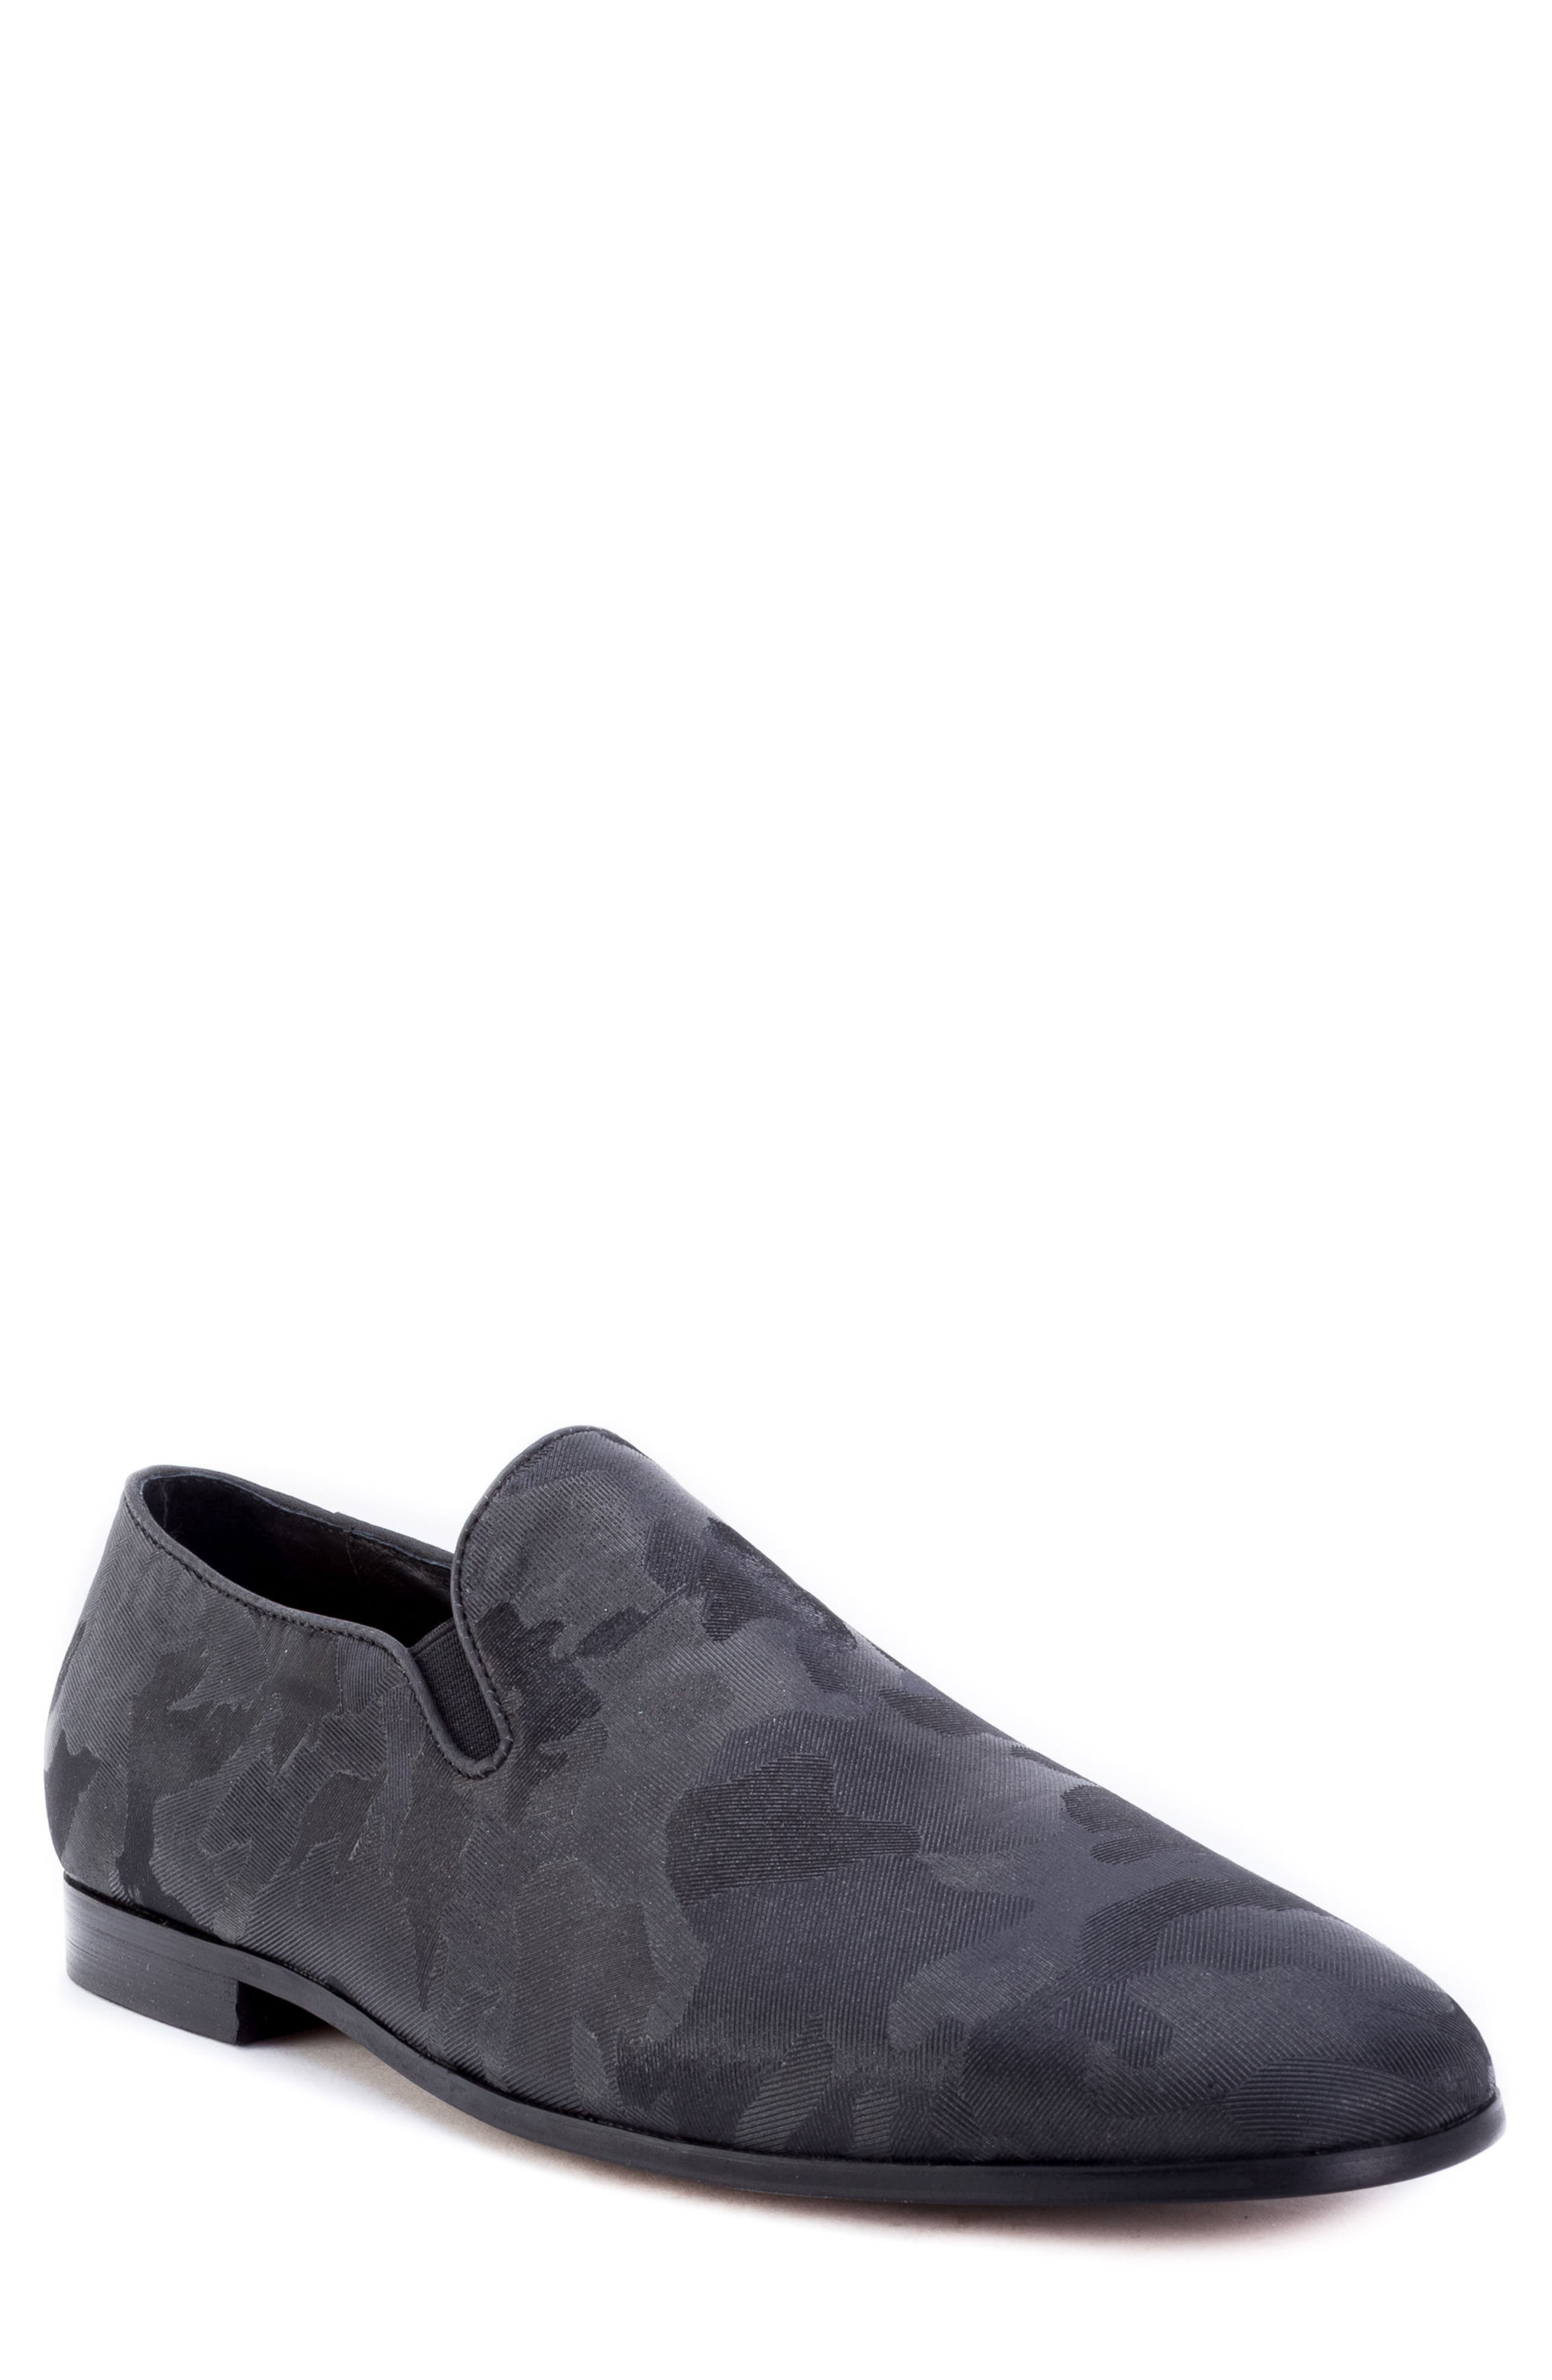 Fry Camouflage Venetian Loafer,                             Main thumbnail 1, color,                             BLACK FABRIC